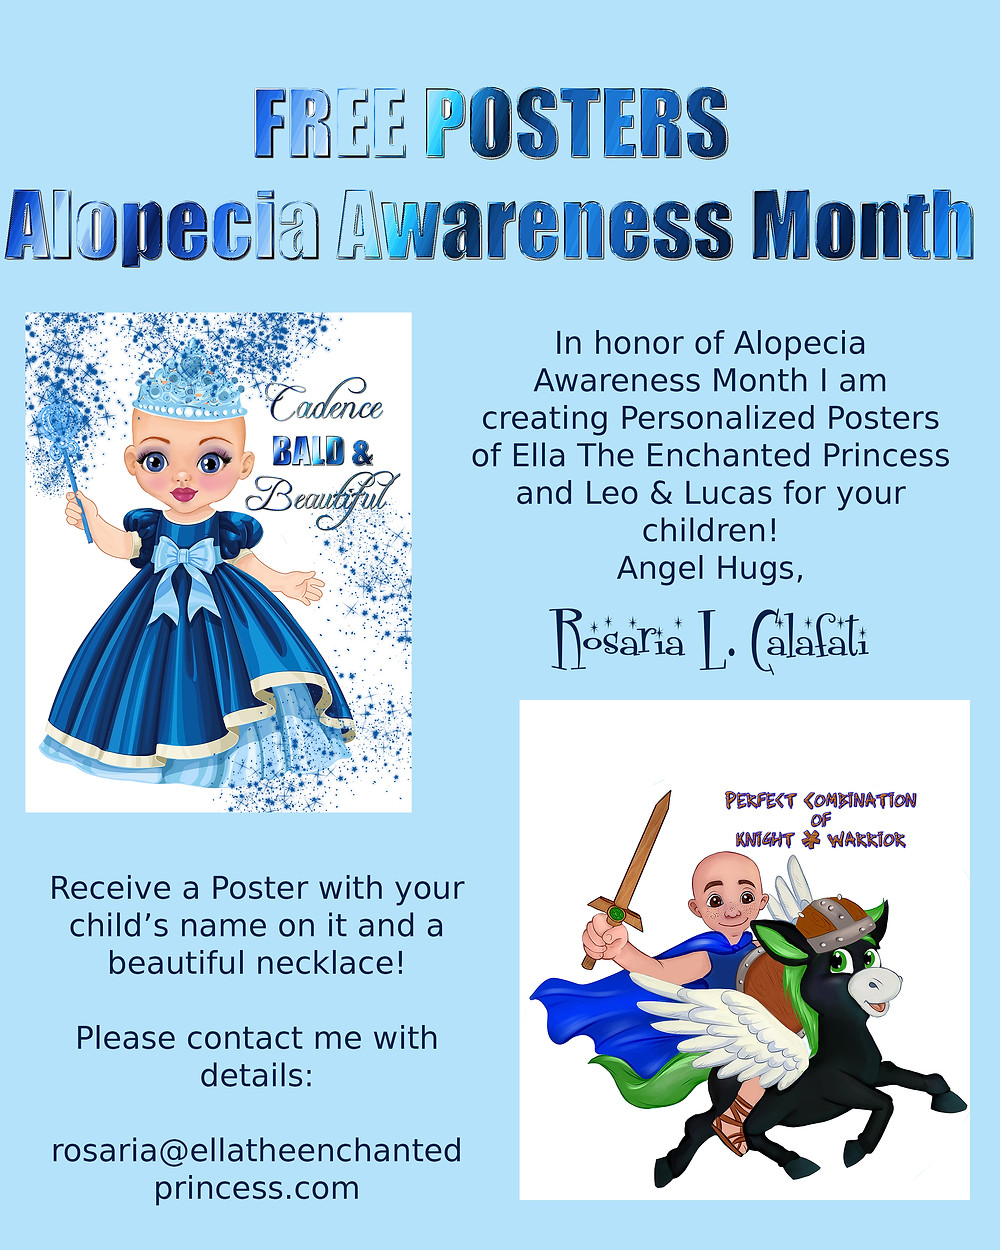 FREE Poster Alopecia Awareness Month